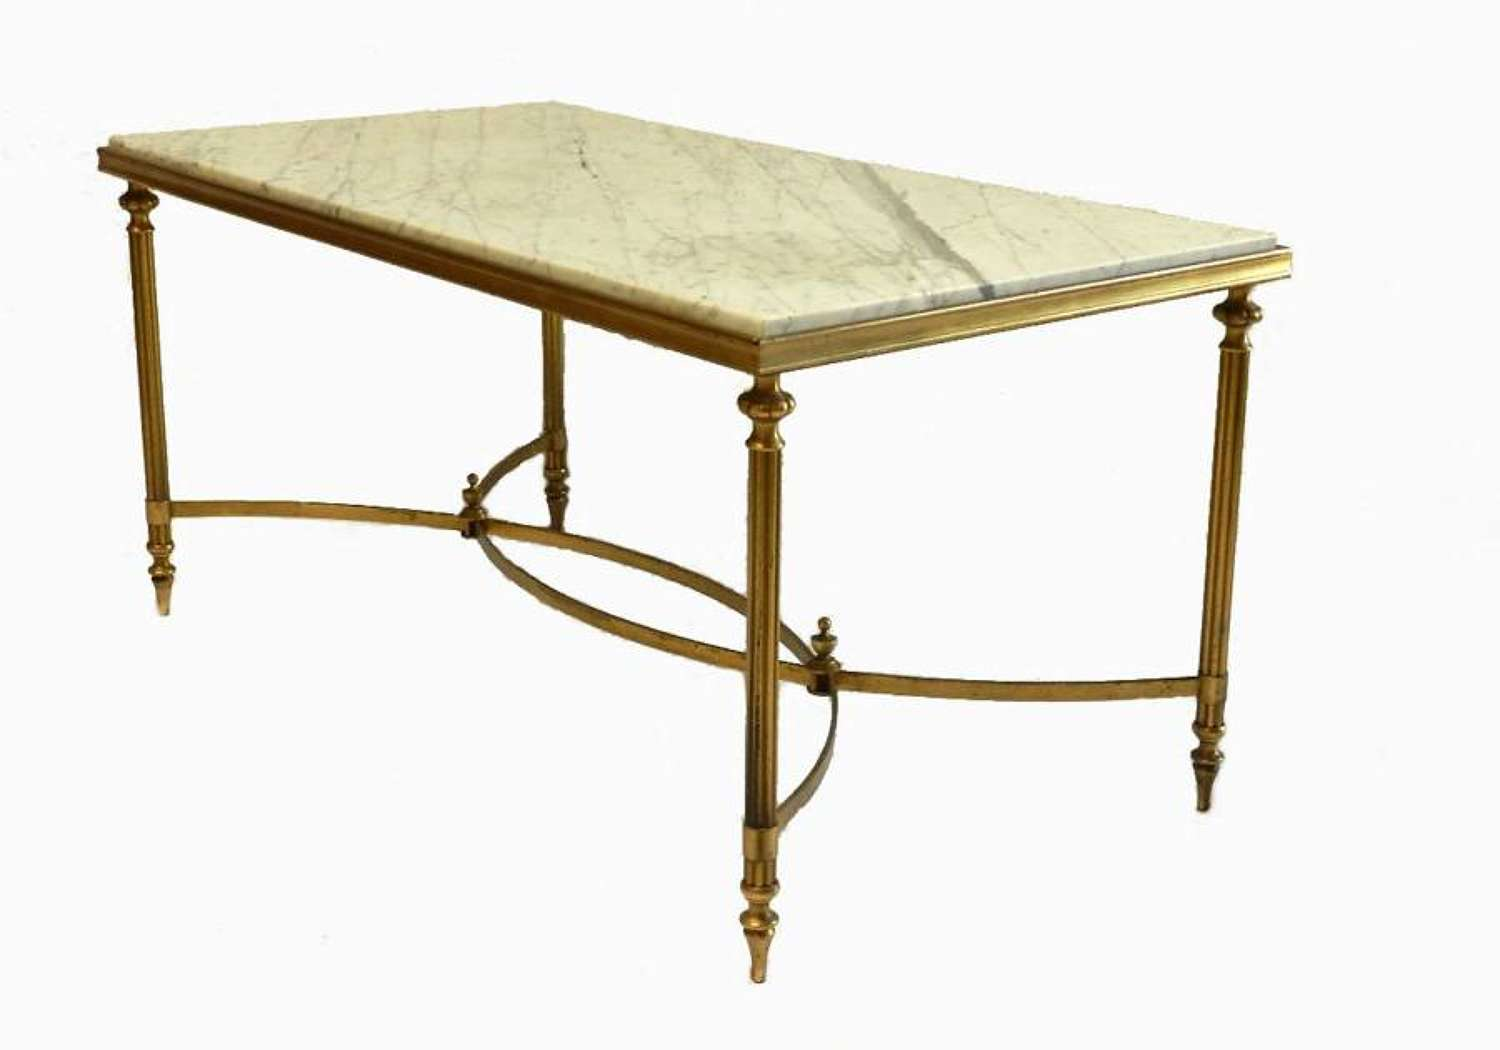 French Coffee Table Vintage Neoclassical Brass & Marble Side Table style Ramsay Bagues Jansen